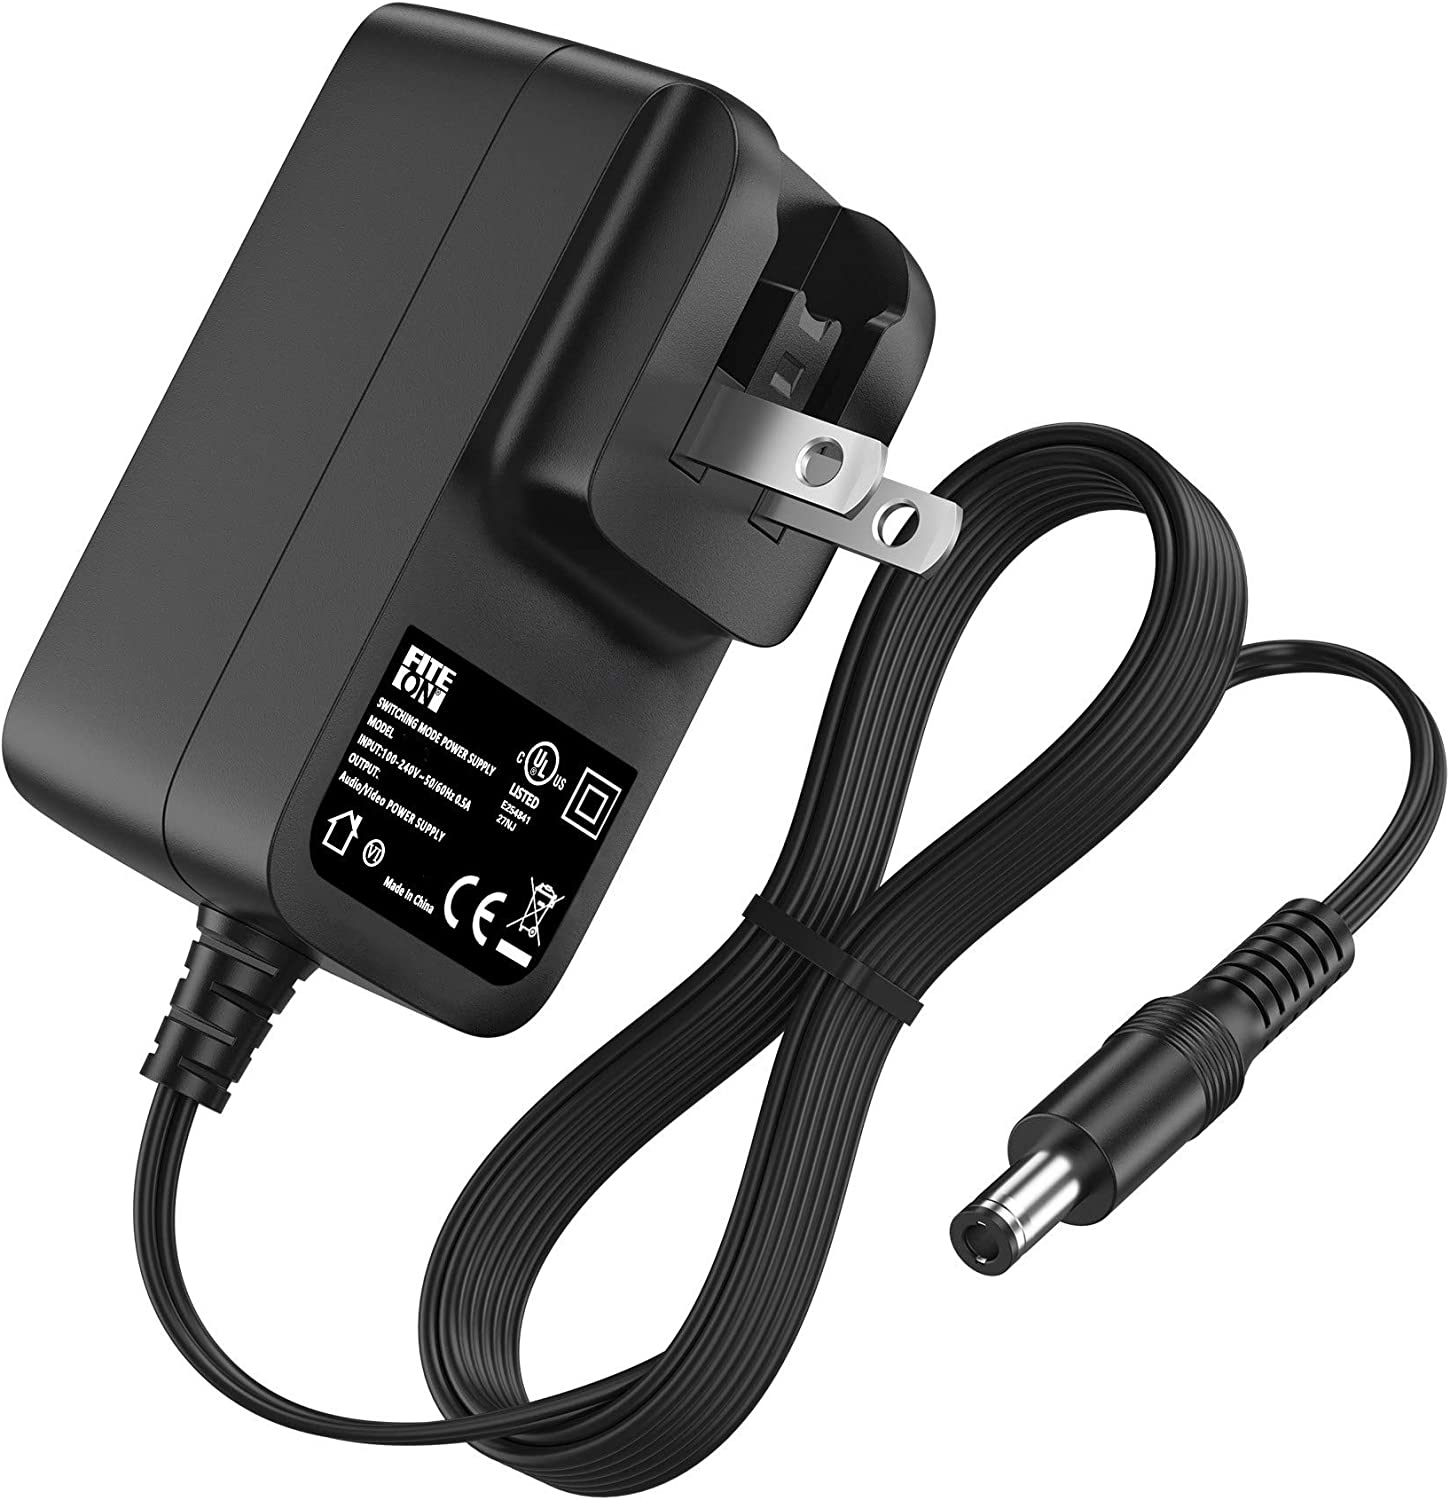 FITE ON UL Listed AC Gorgeous Adapter Power in-Camera for Nippon regular agency Charger Battery